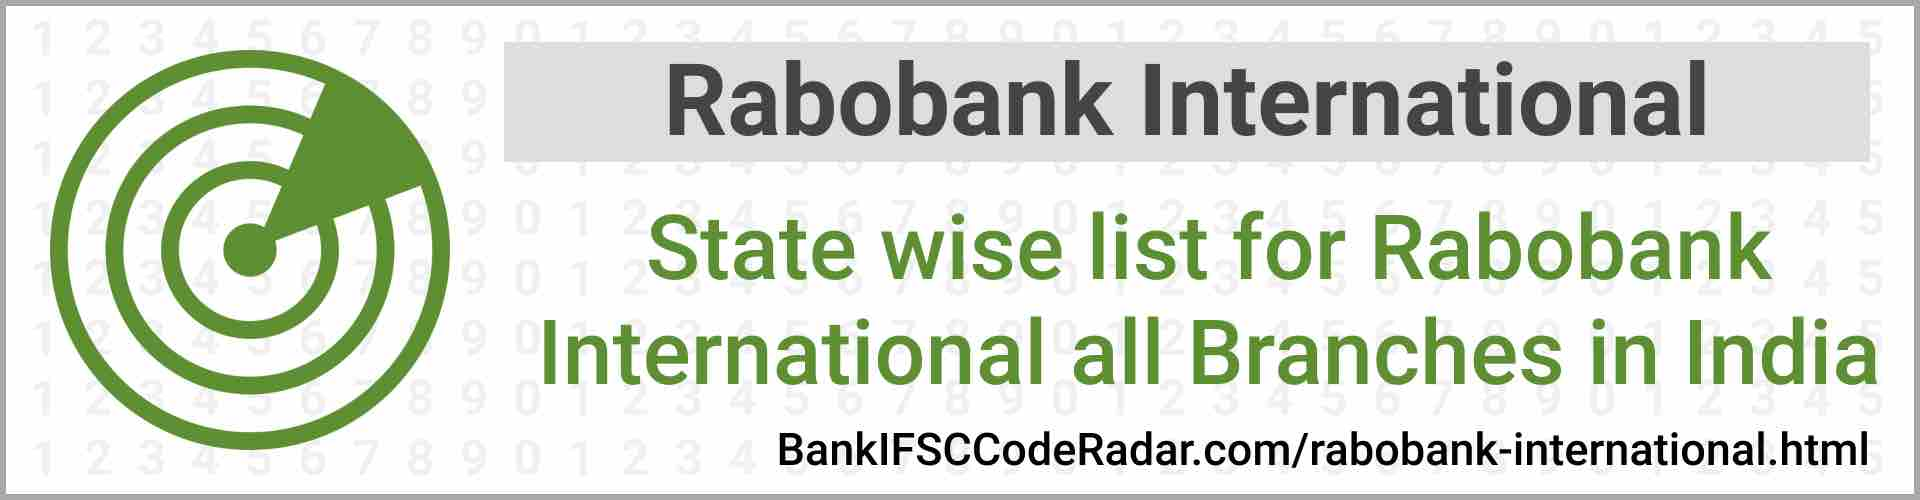 Rabobank International All Branches India